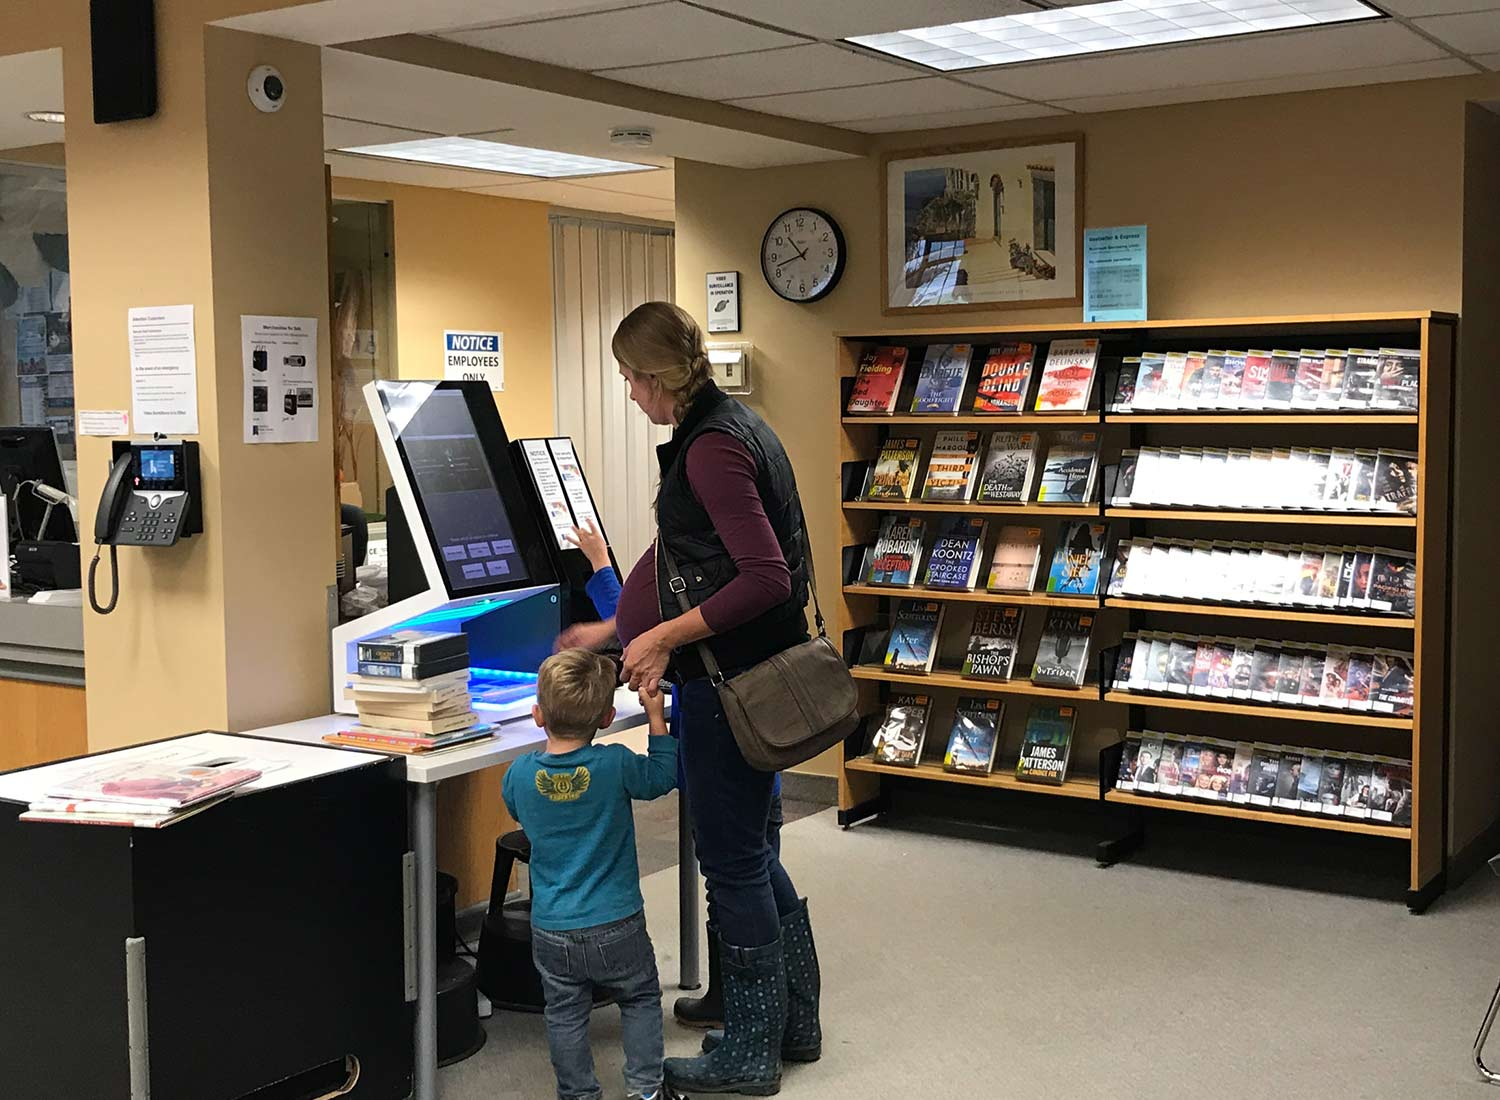 Mother and son checking out books at the selfCheck 1000 in Hamilton library